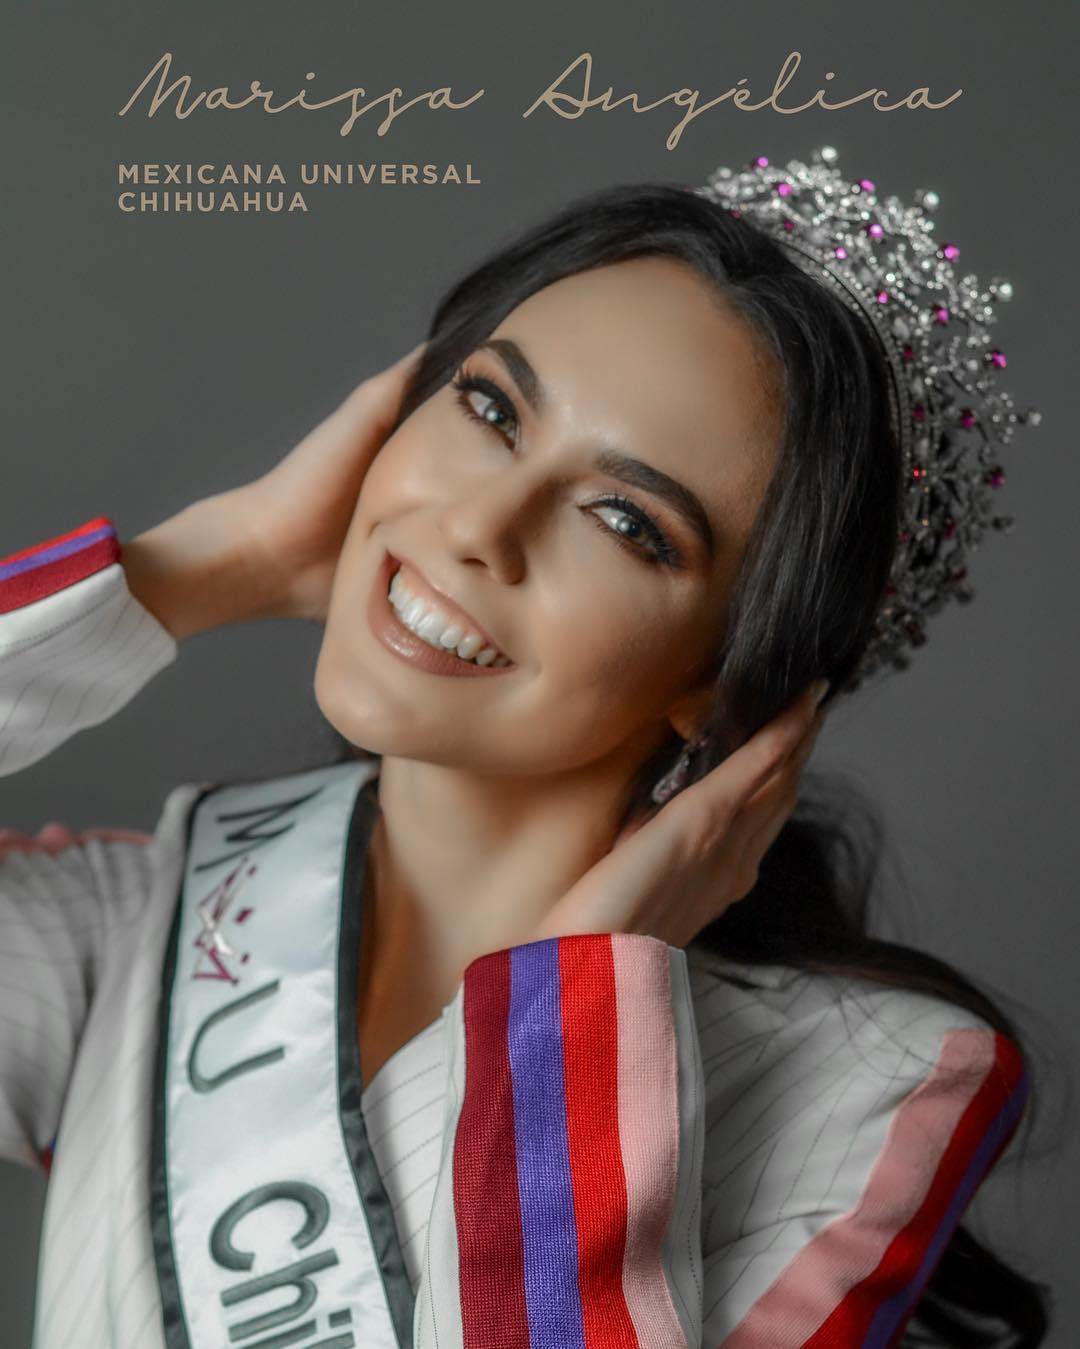 candidatas a mexicana universal 2019. final: 31 may (no confirmado 100%). - Página 5 Chwdcjg5